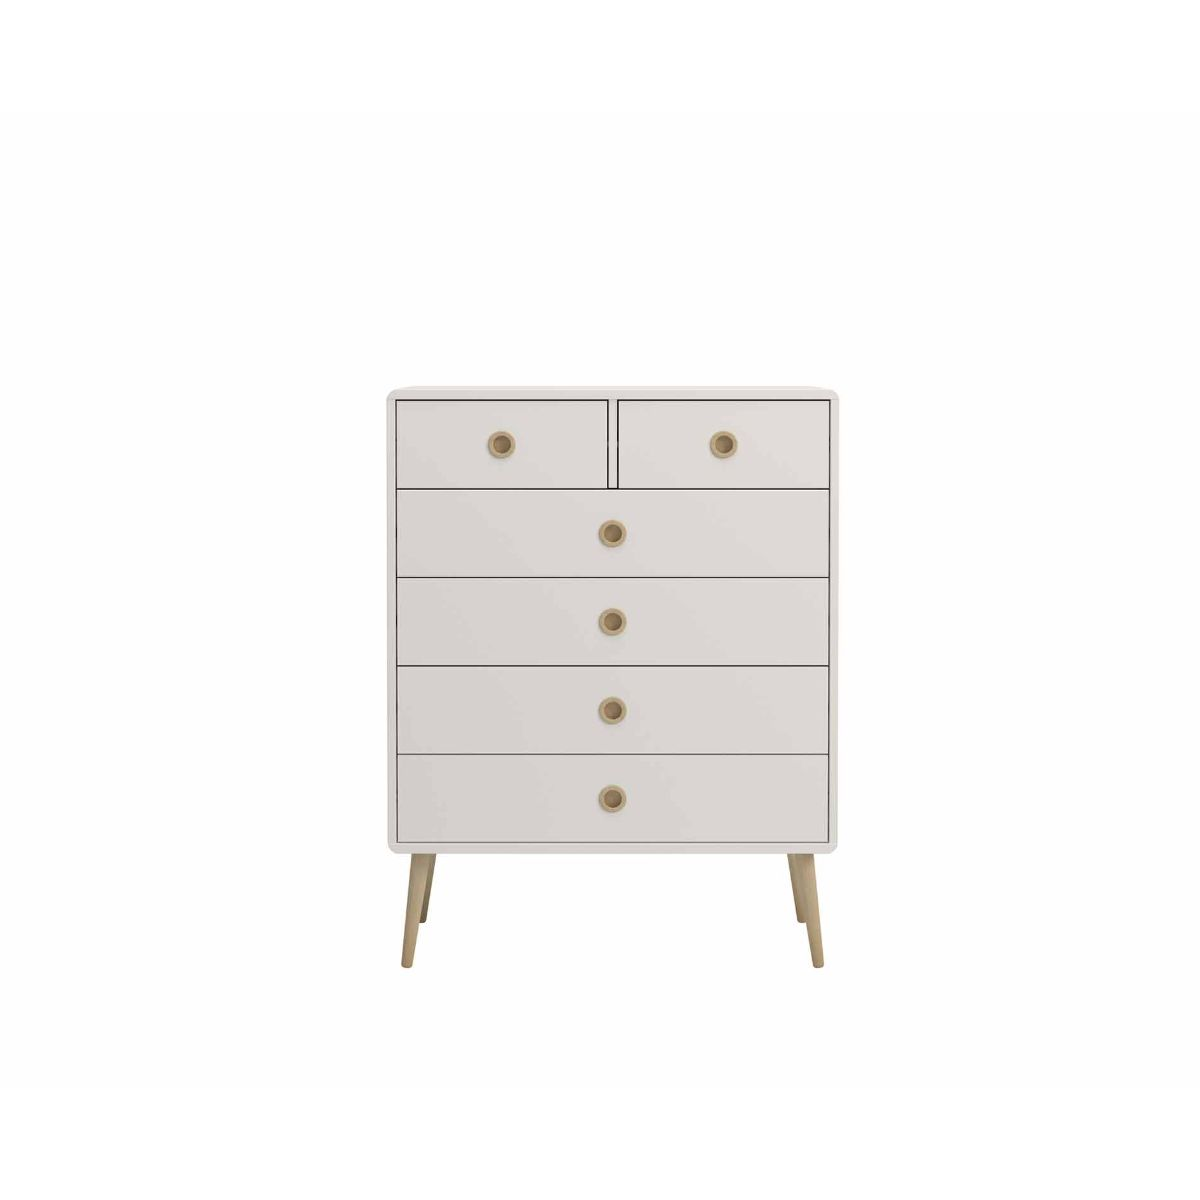 Steens Retro 2 Over 4 Chest of Drawers, White